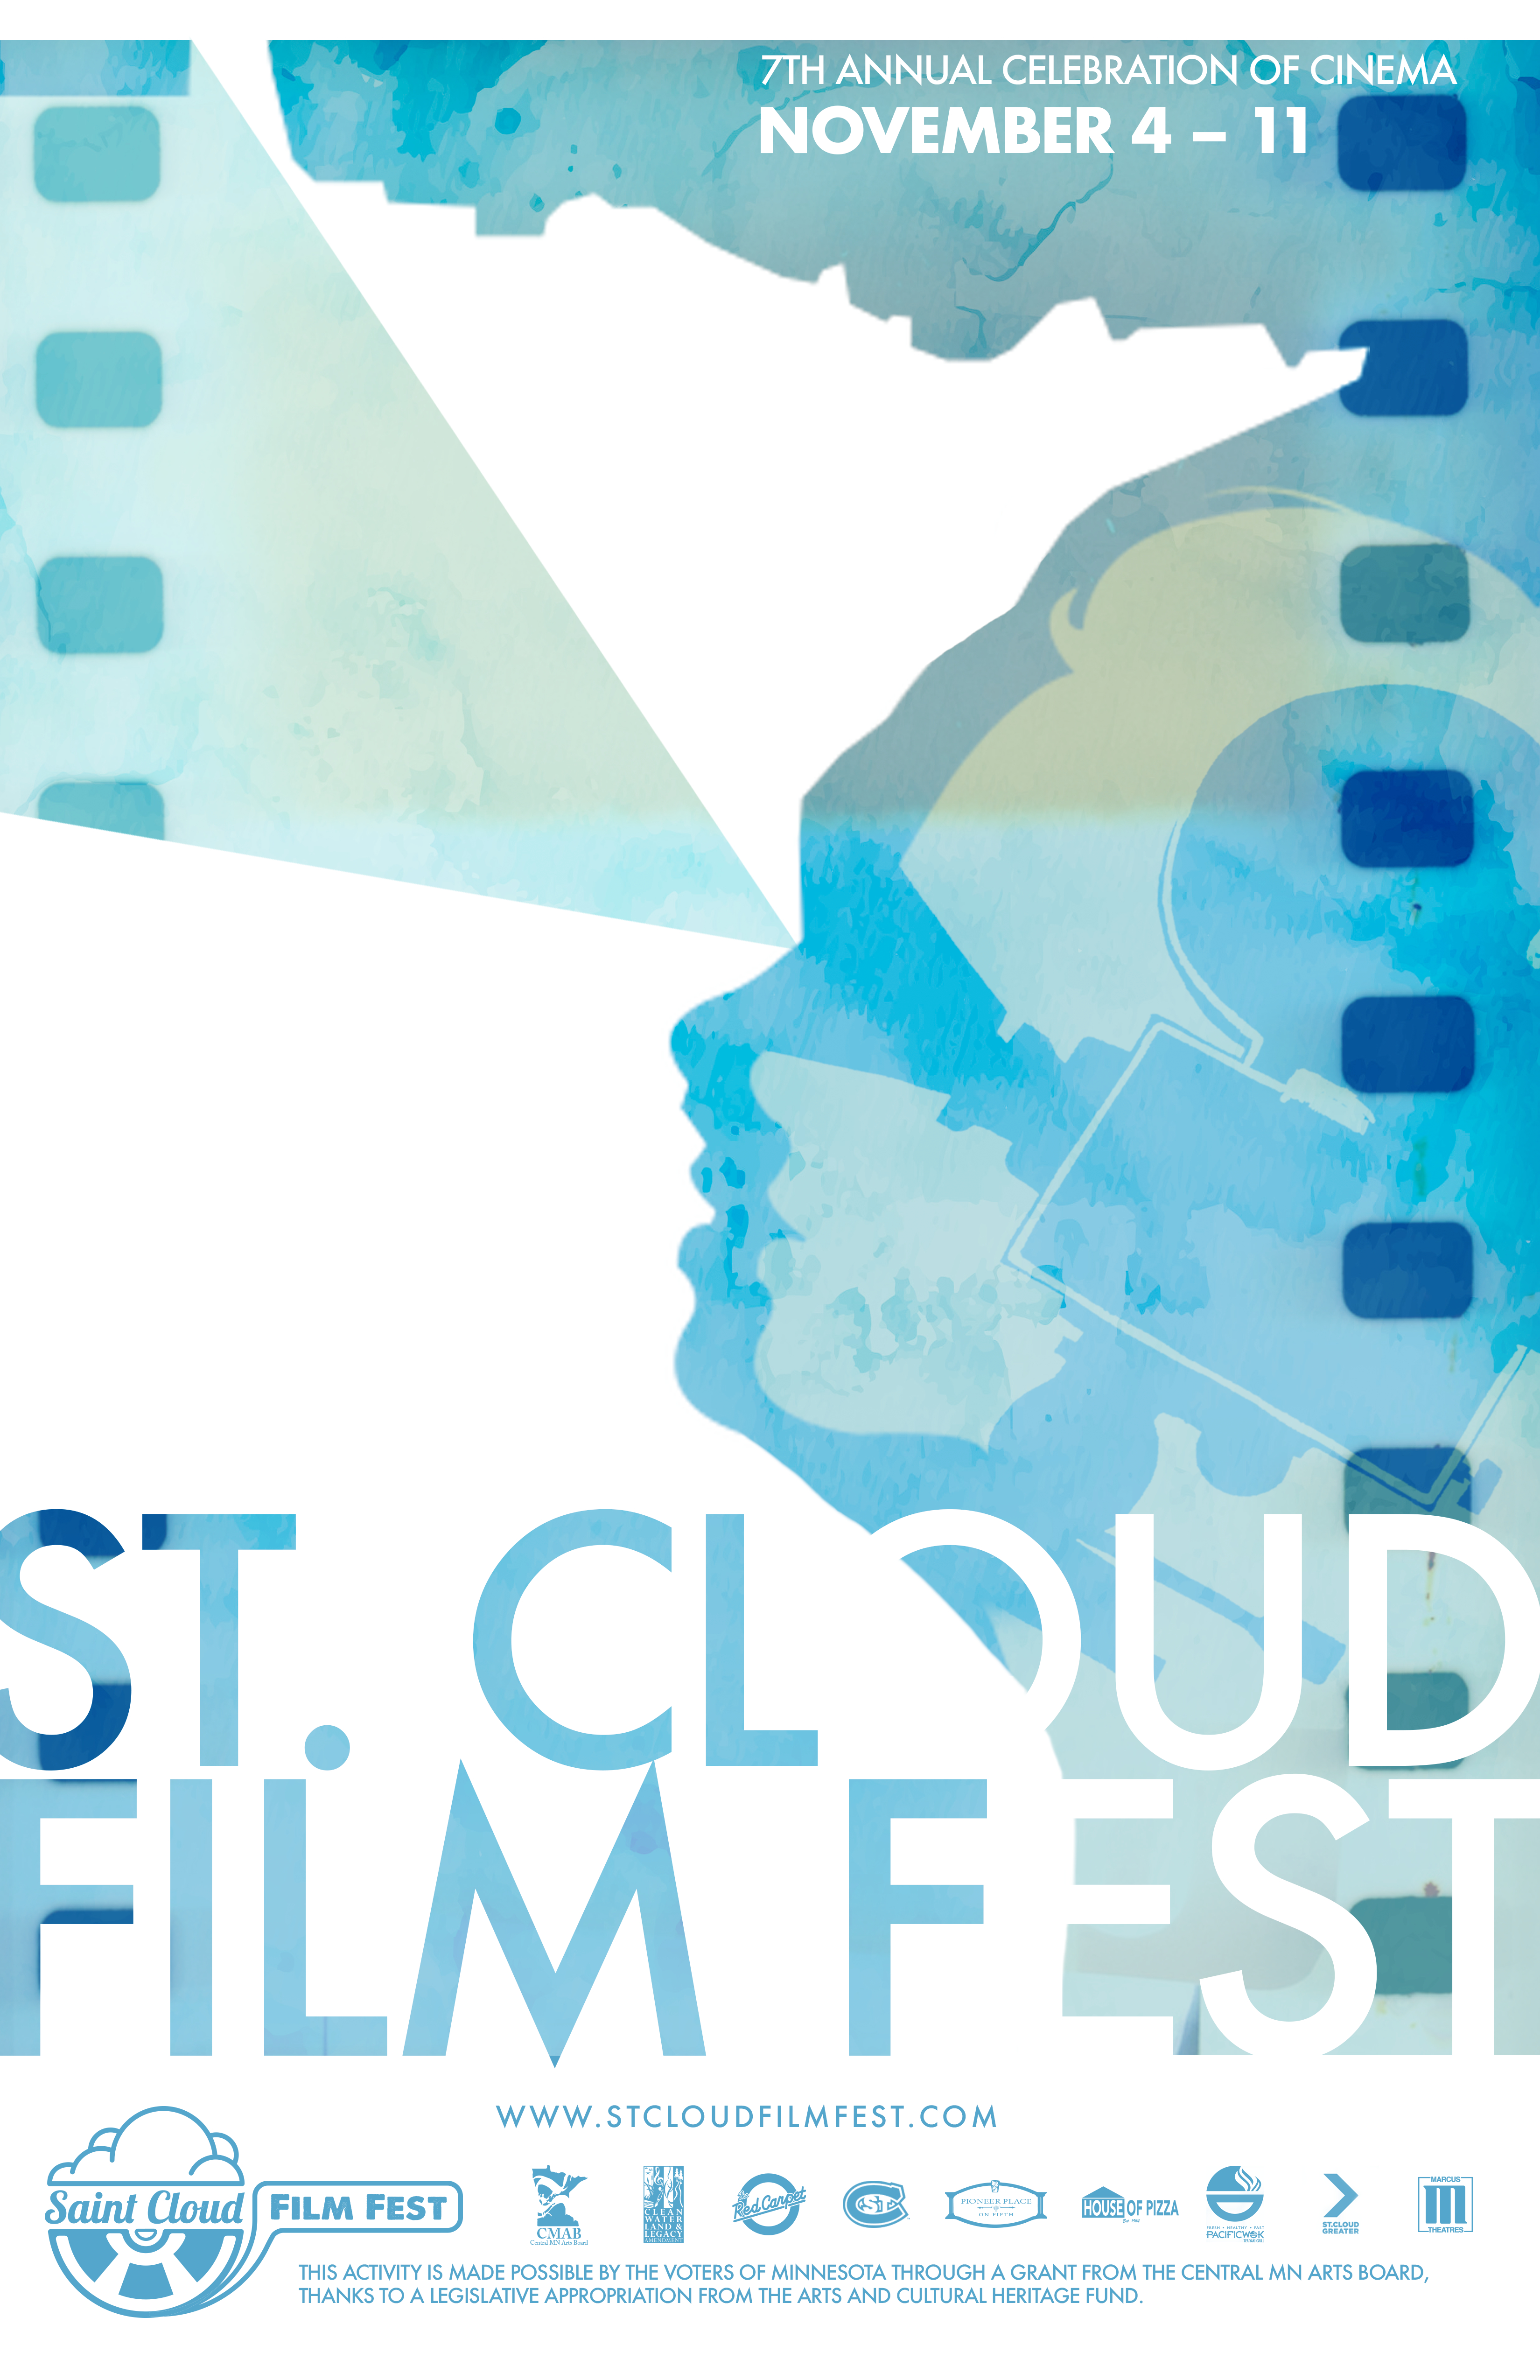 St. Cloud Film Fest | 2017 Program